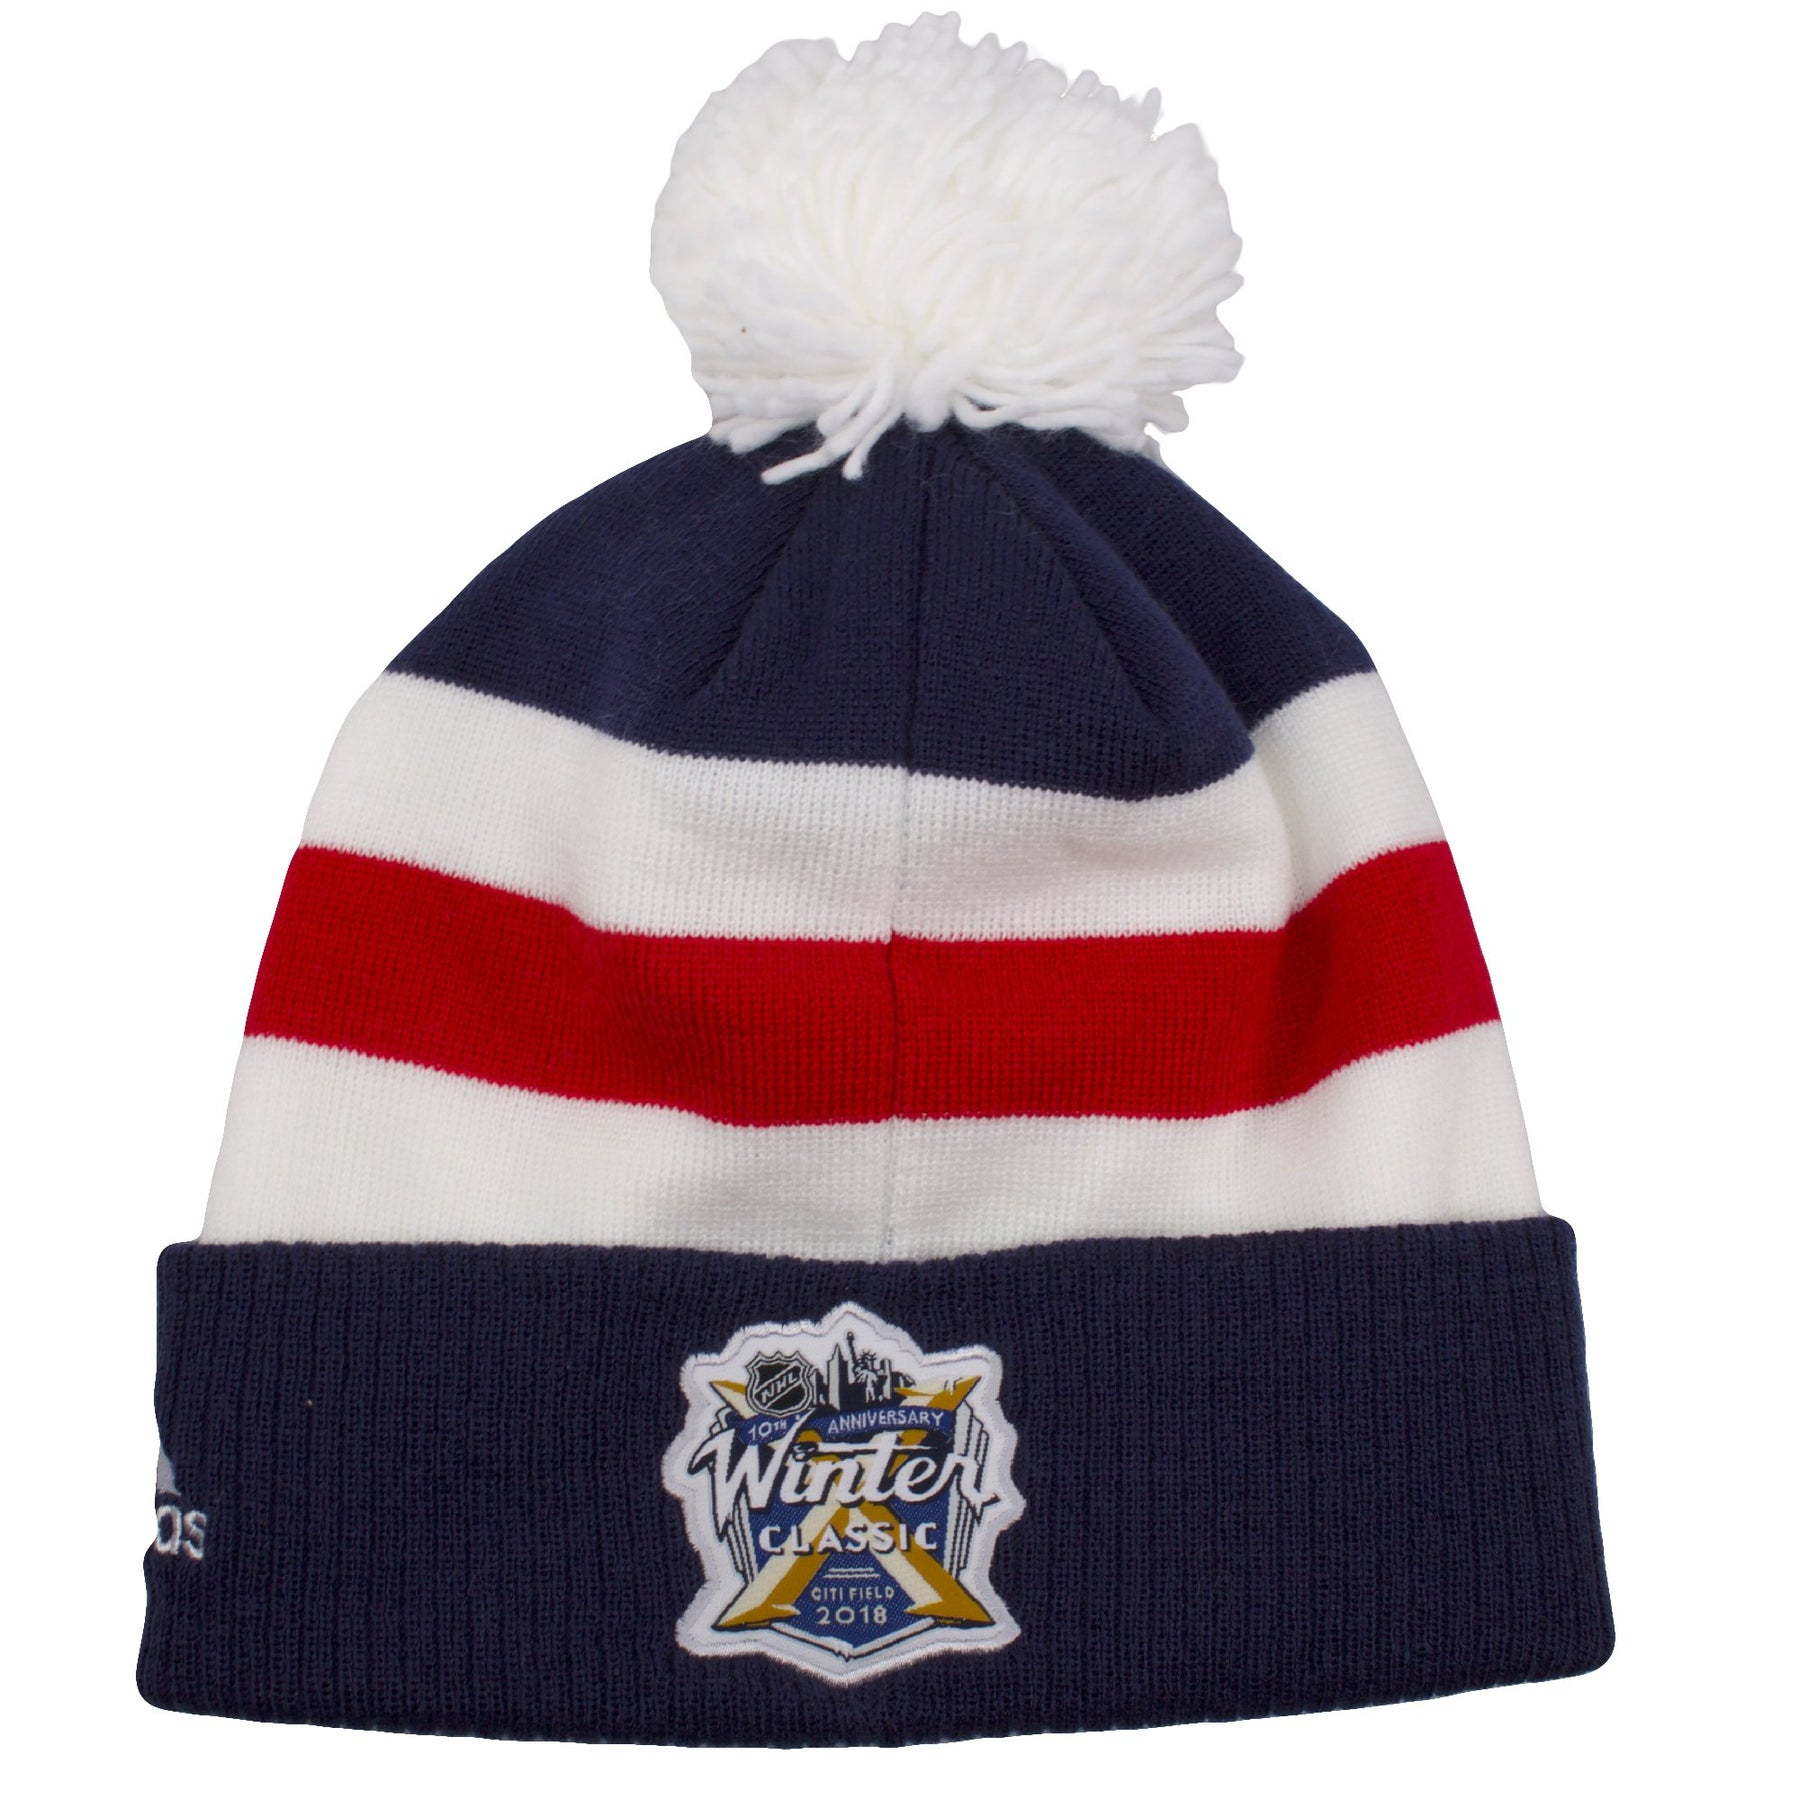 ... The back side of this New York Rangers Winter hat shows the NHL  anniversary logo showing cddd450d0f5